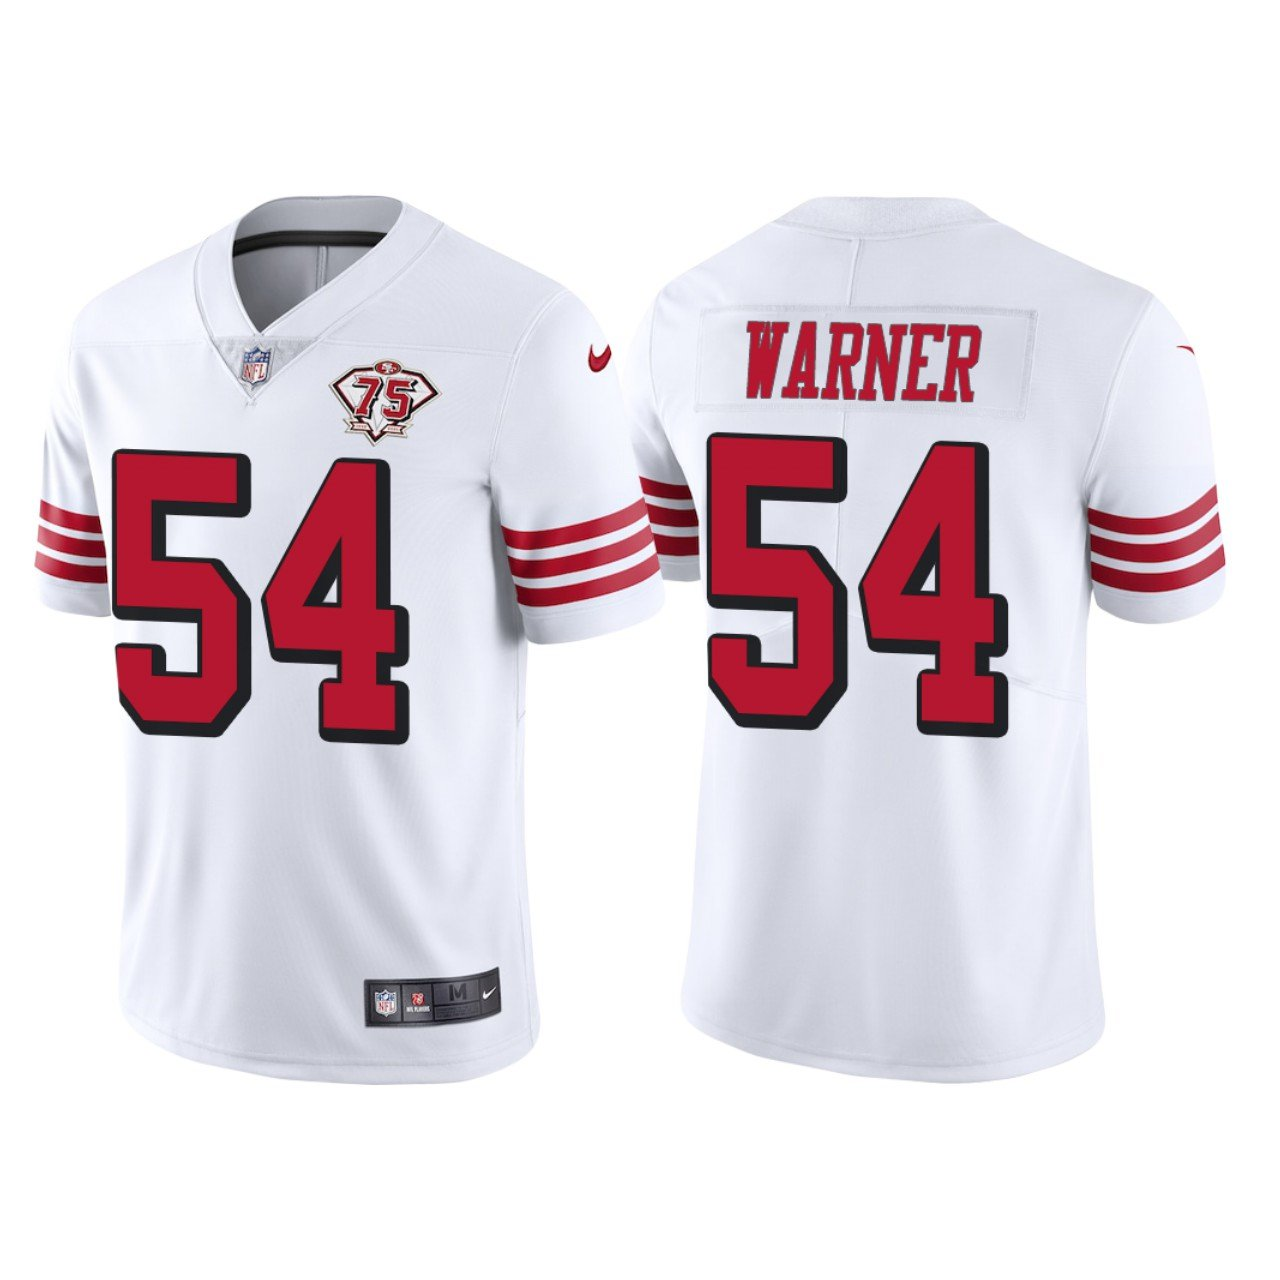 Men's #54 Fred Warner San Francisco 49ers White Throwback Limited Jersey 75th Anniversary Stitched